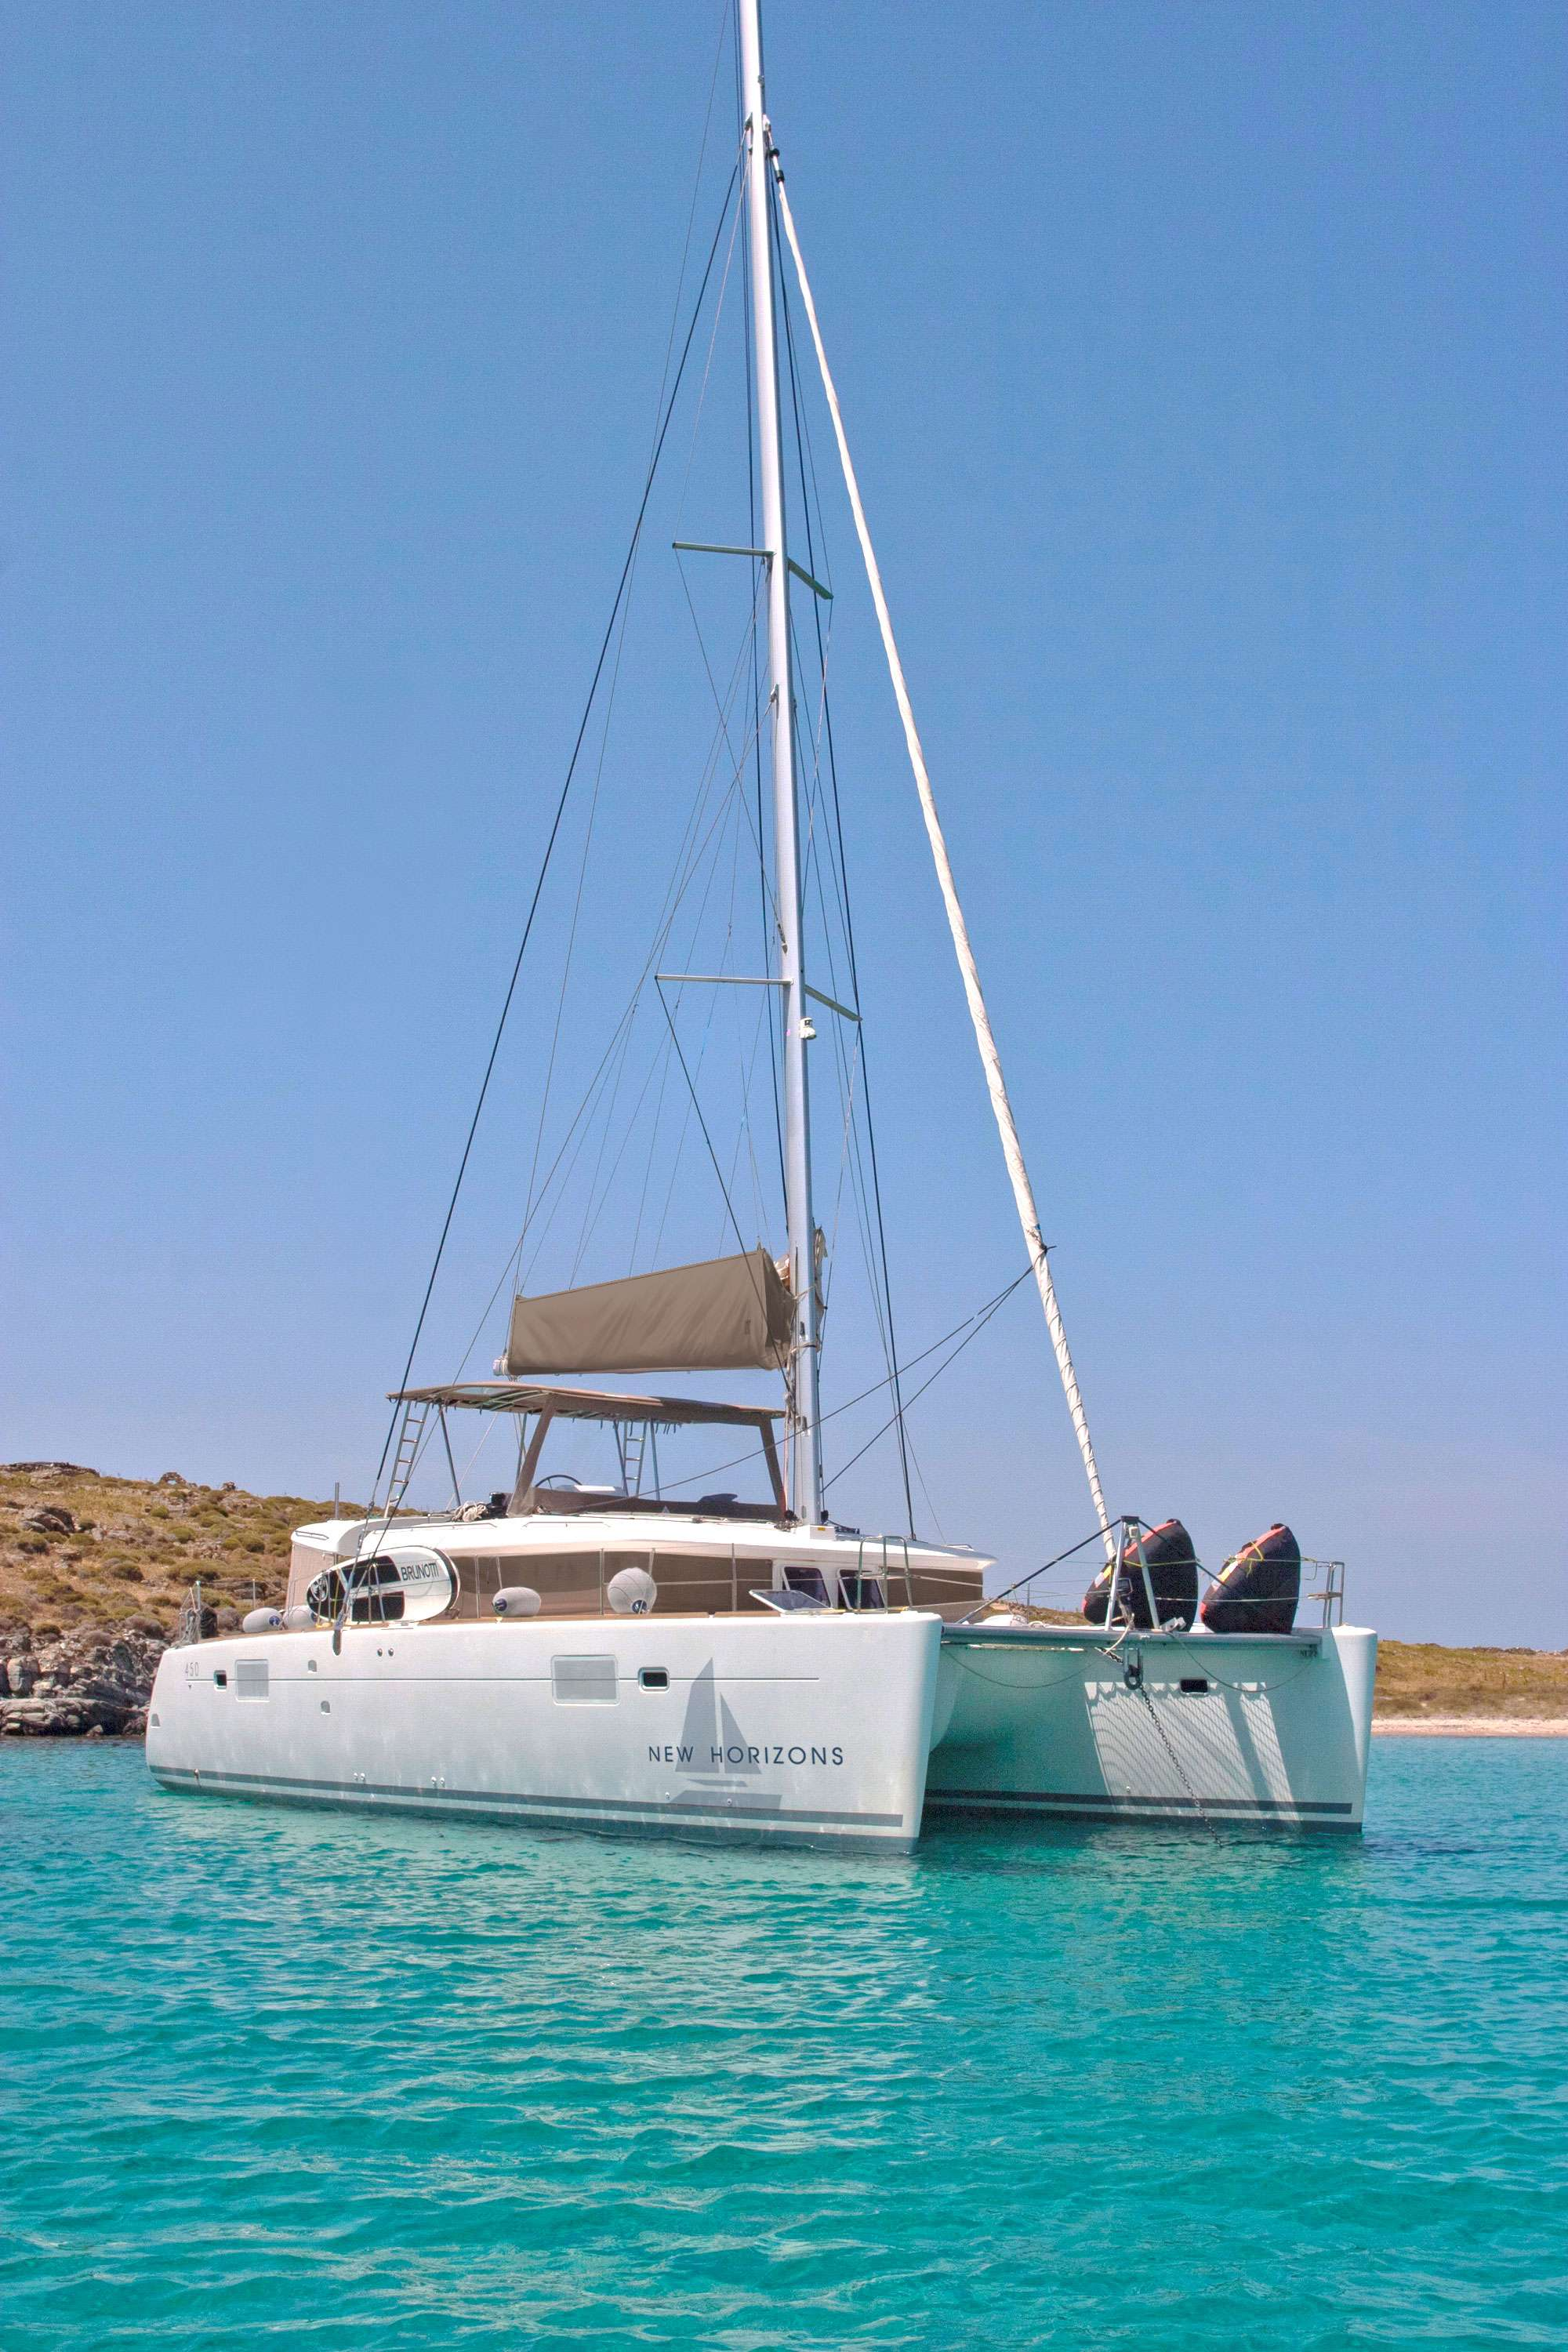 Catamaran NEW HORIZONS